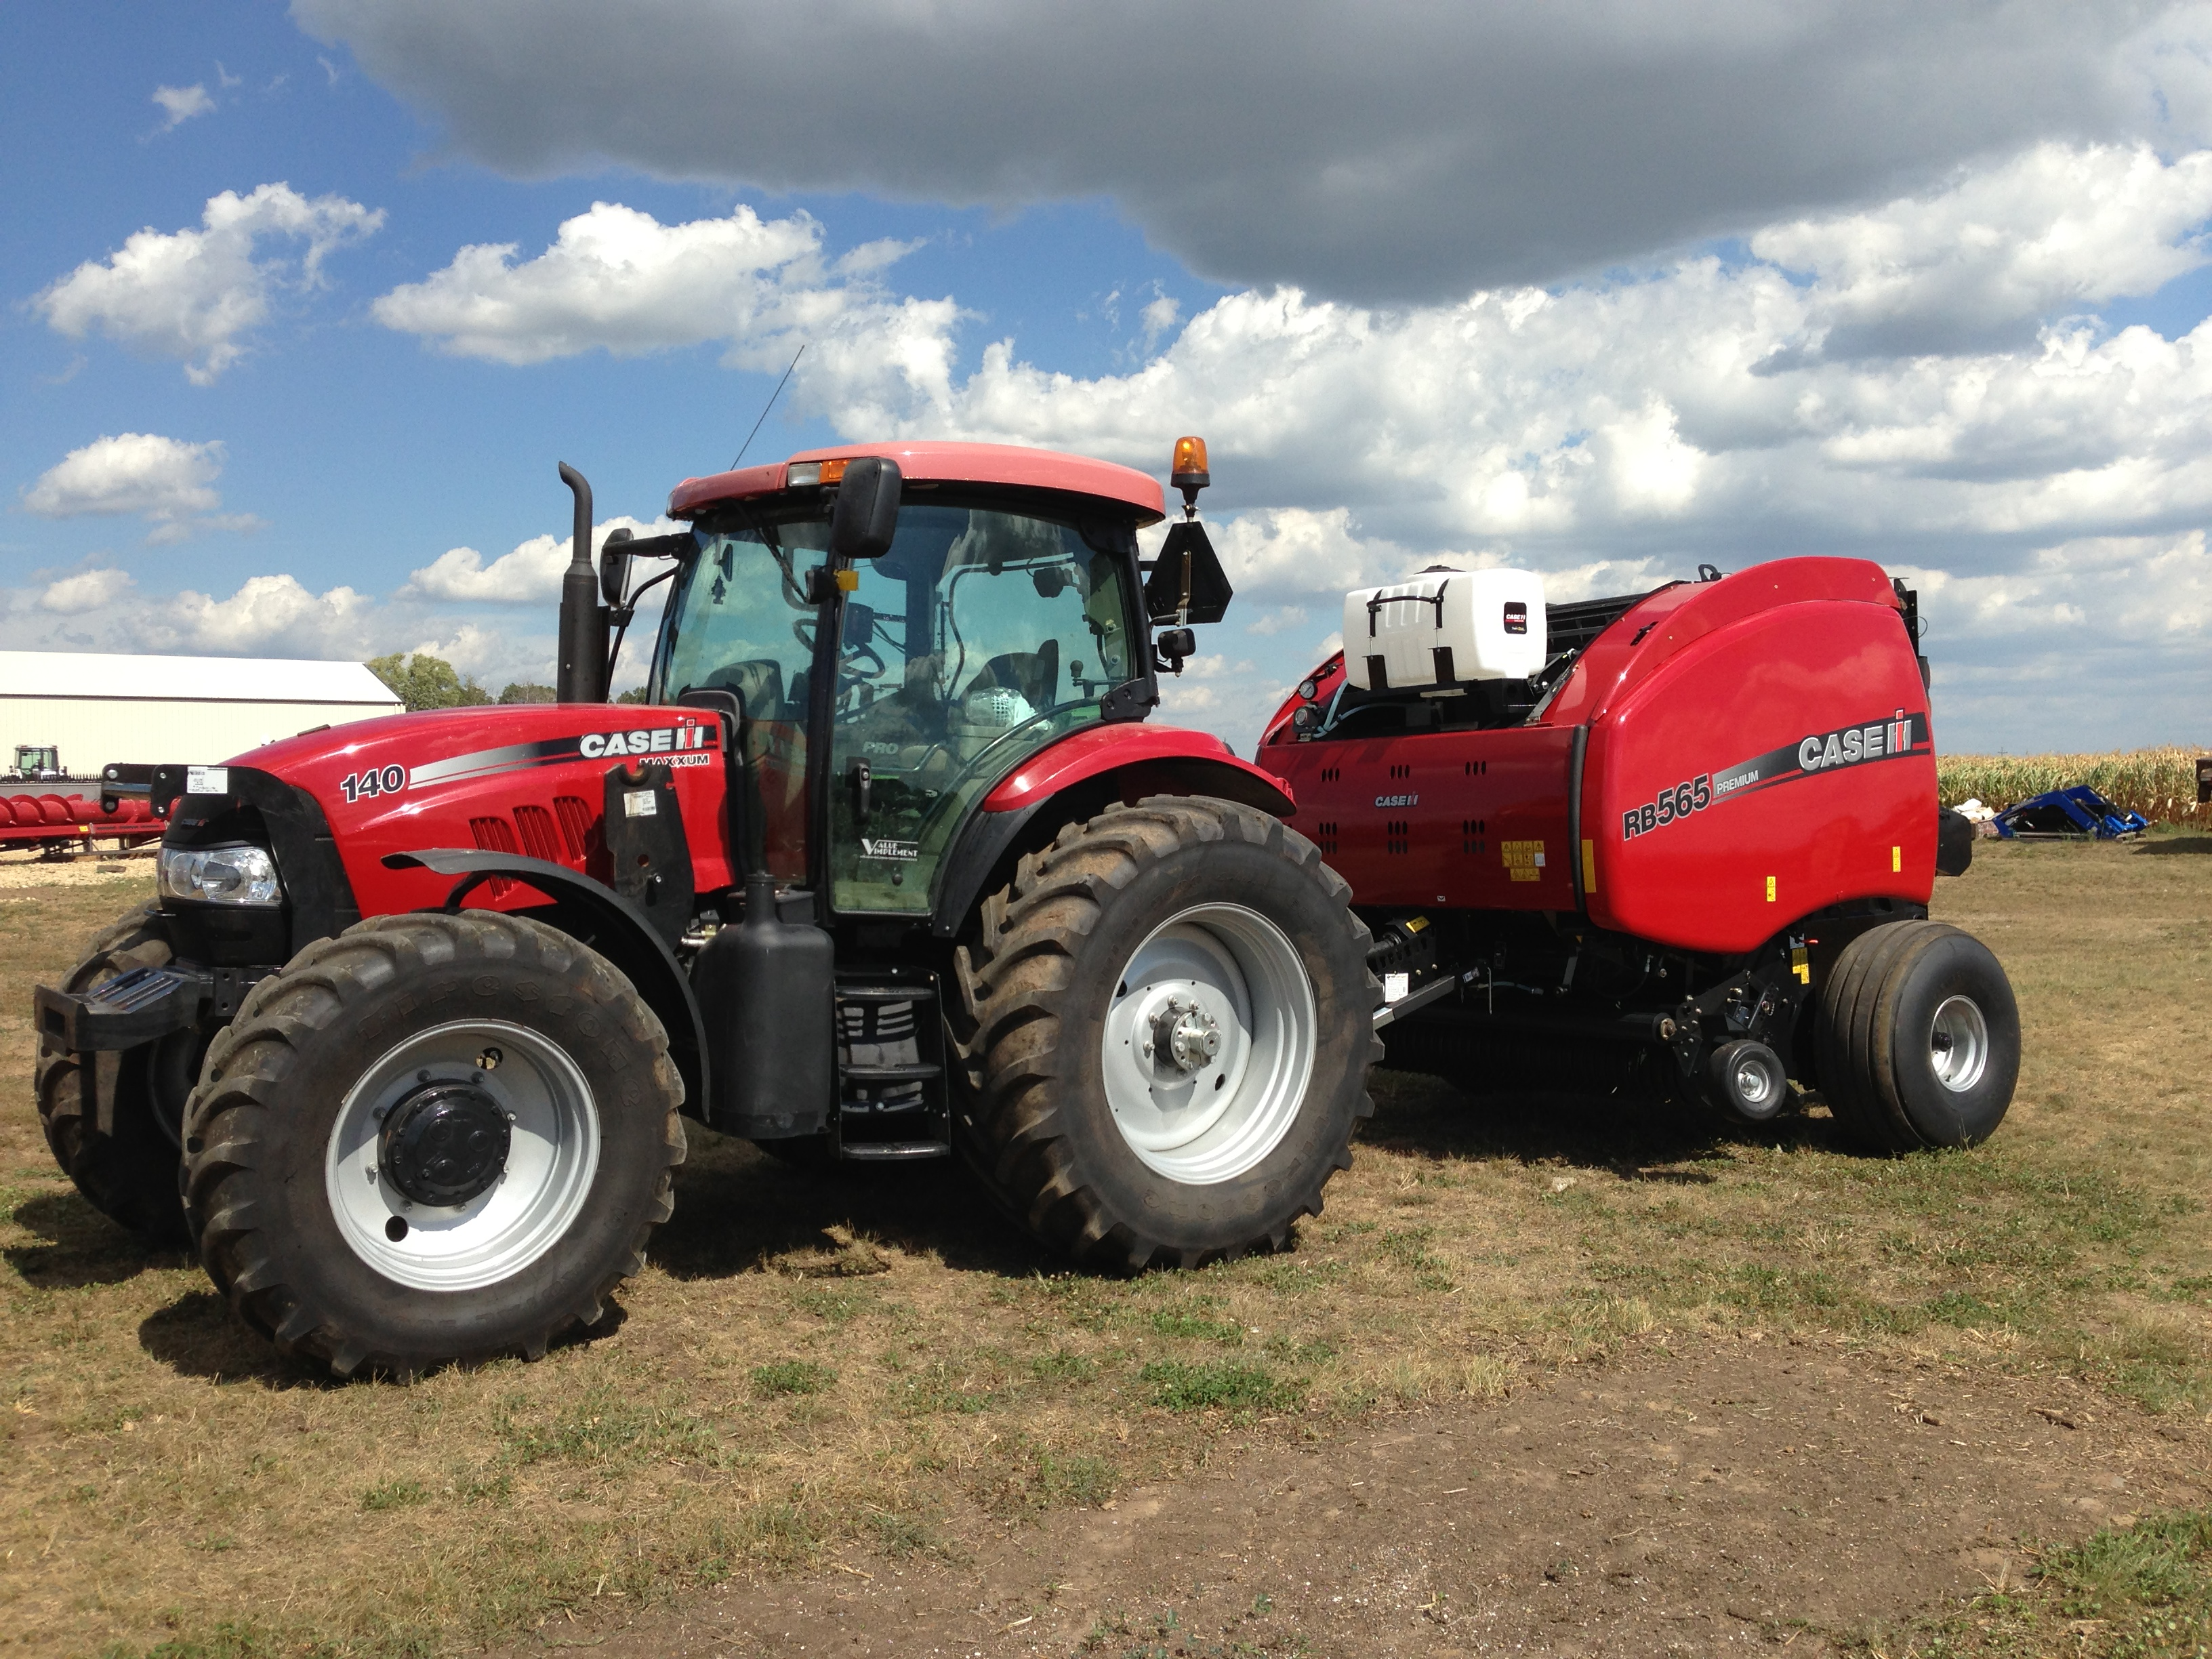 Case IH RB baler